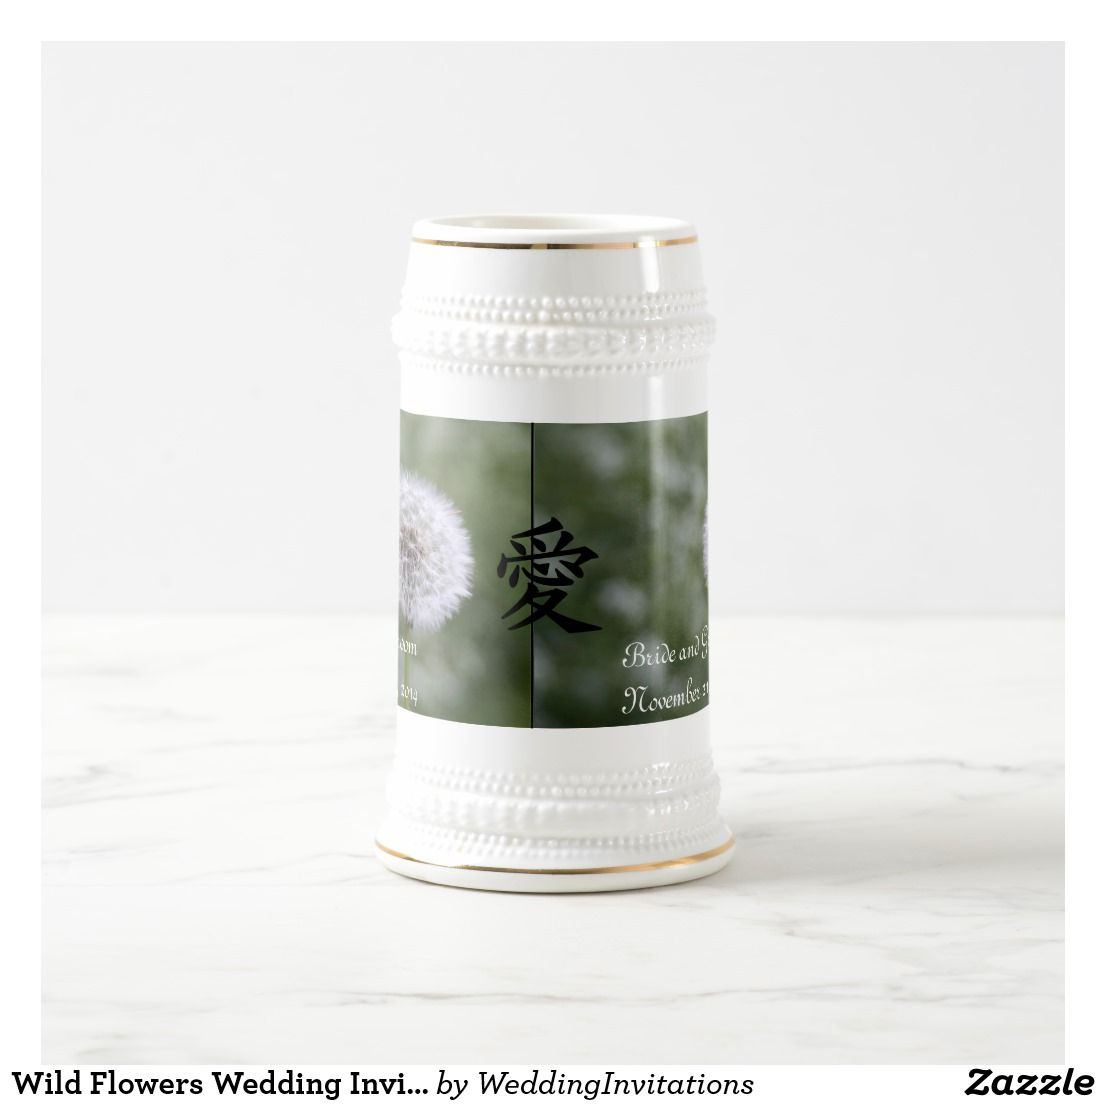 Wild Flowers Wedding Invitations and Favors Beer Stein | Wild ...